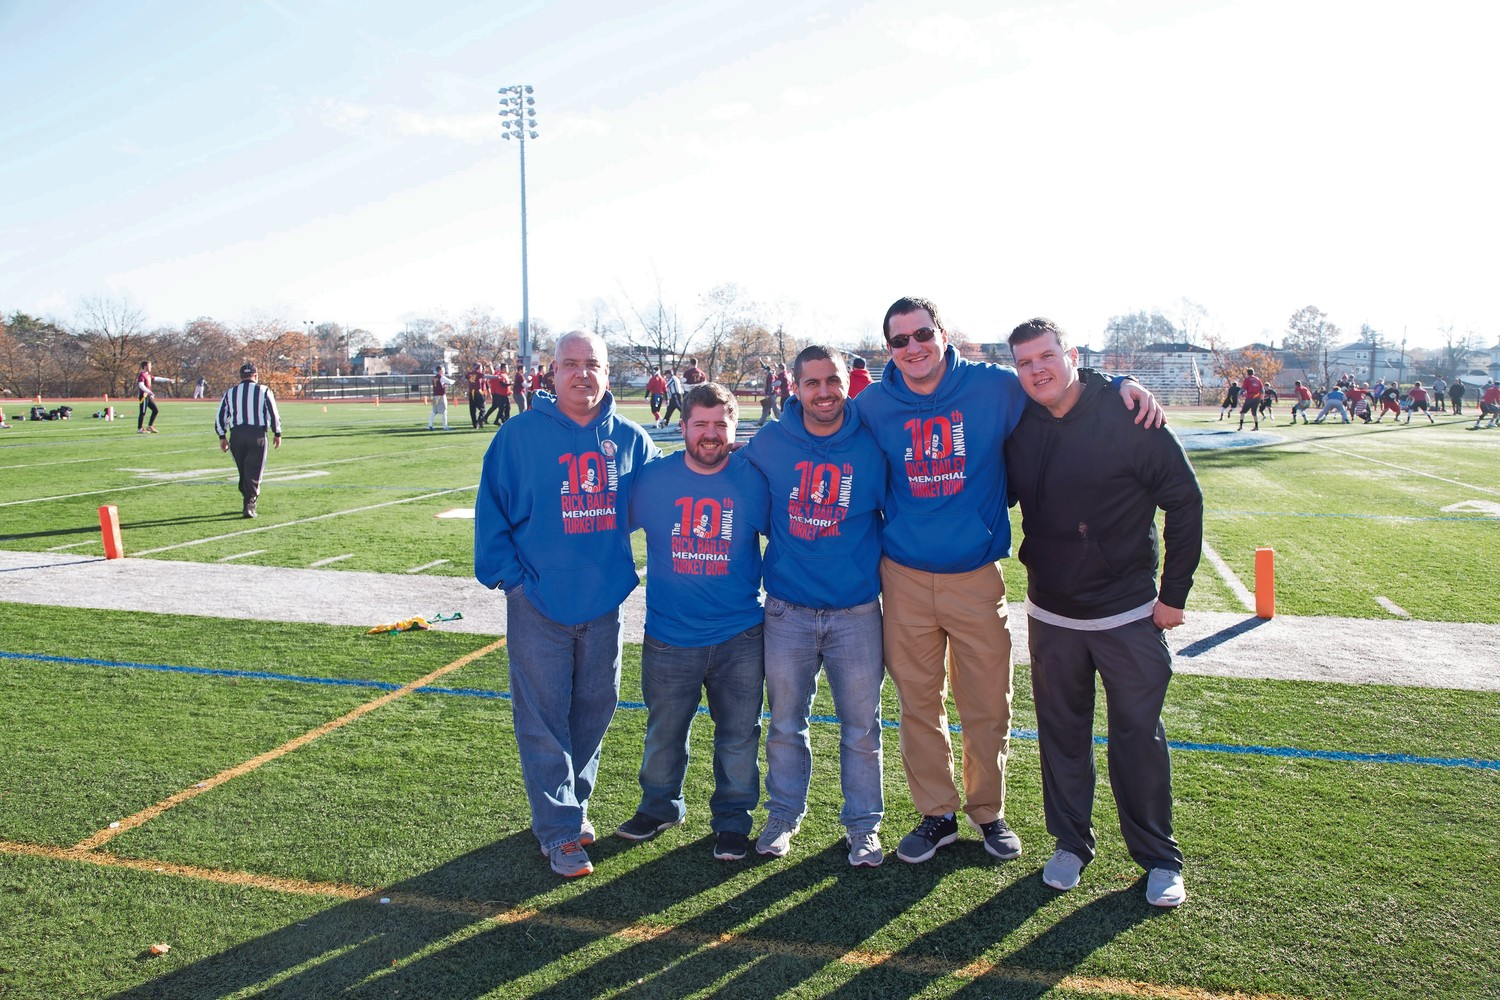 Dozens of MacArthur High School alumni attended the 10th annual Rick Bailey Memorial Flag Football Tournament on Nov. 25 in memory of the former Generals tight end. From left, James Bailey, Bruce Popko, Coordinator Steve Mazziotti, Matt Levy and Craig DuBeau.